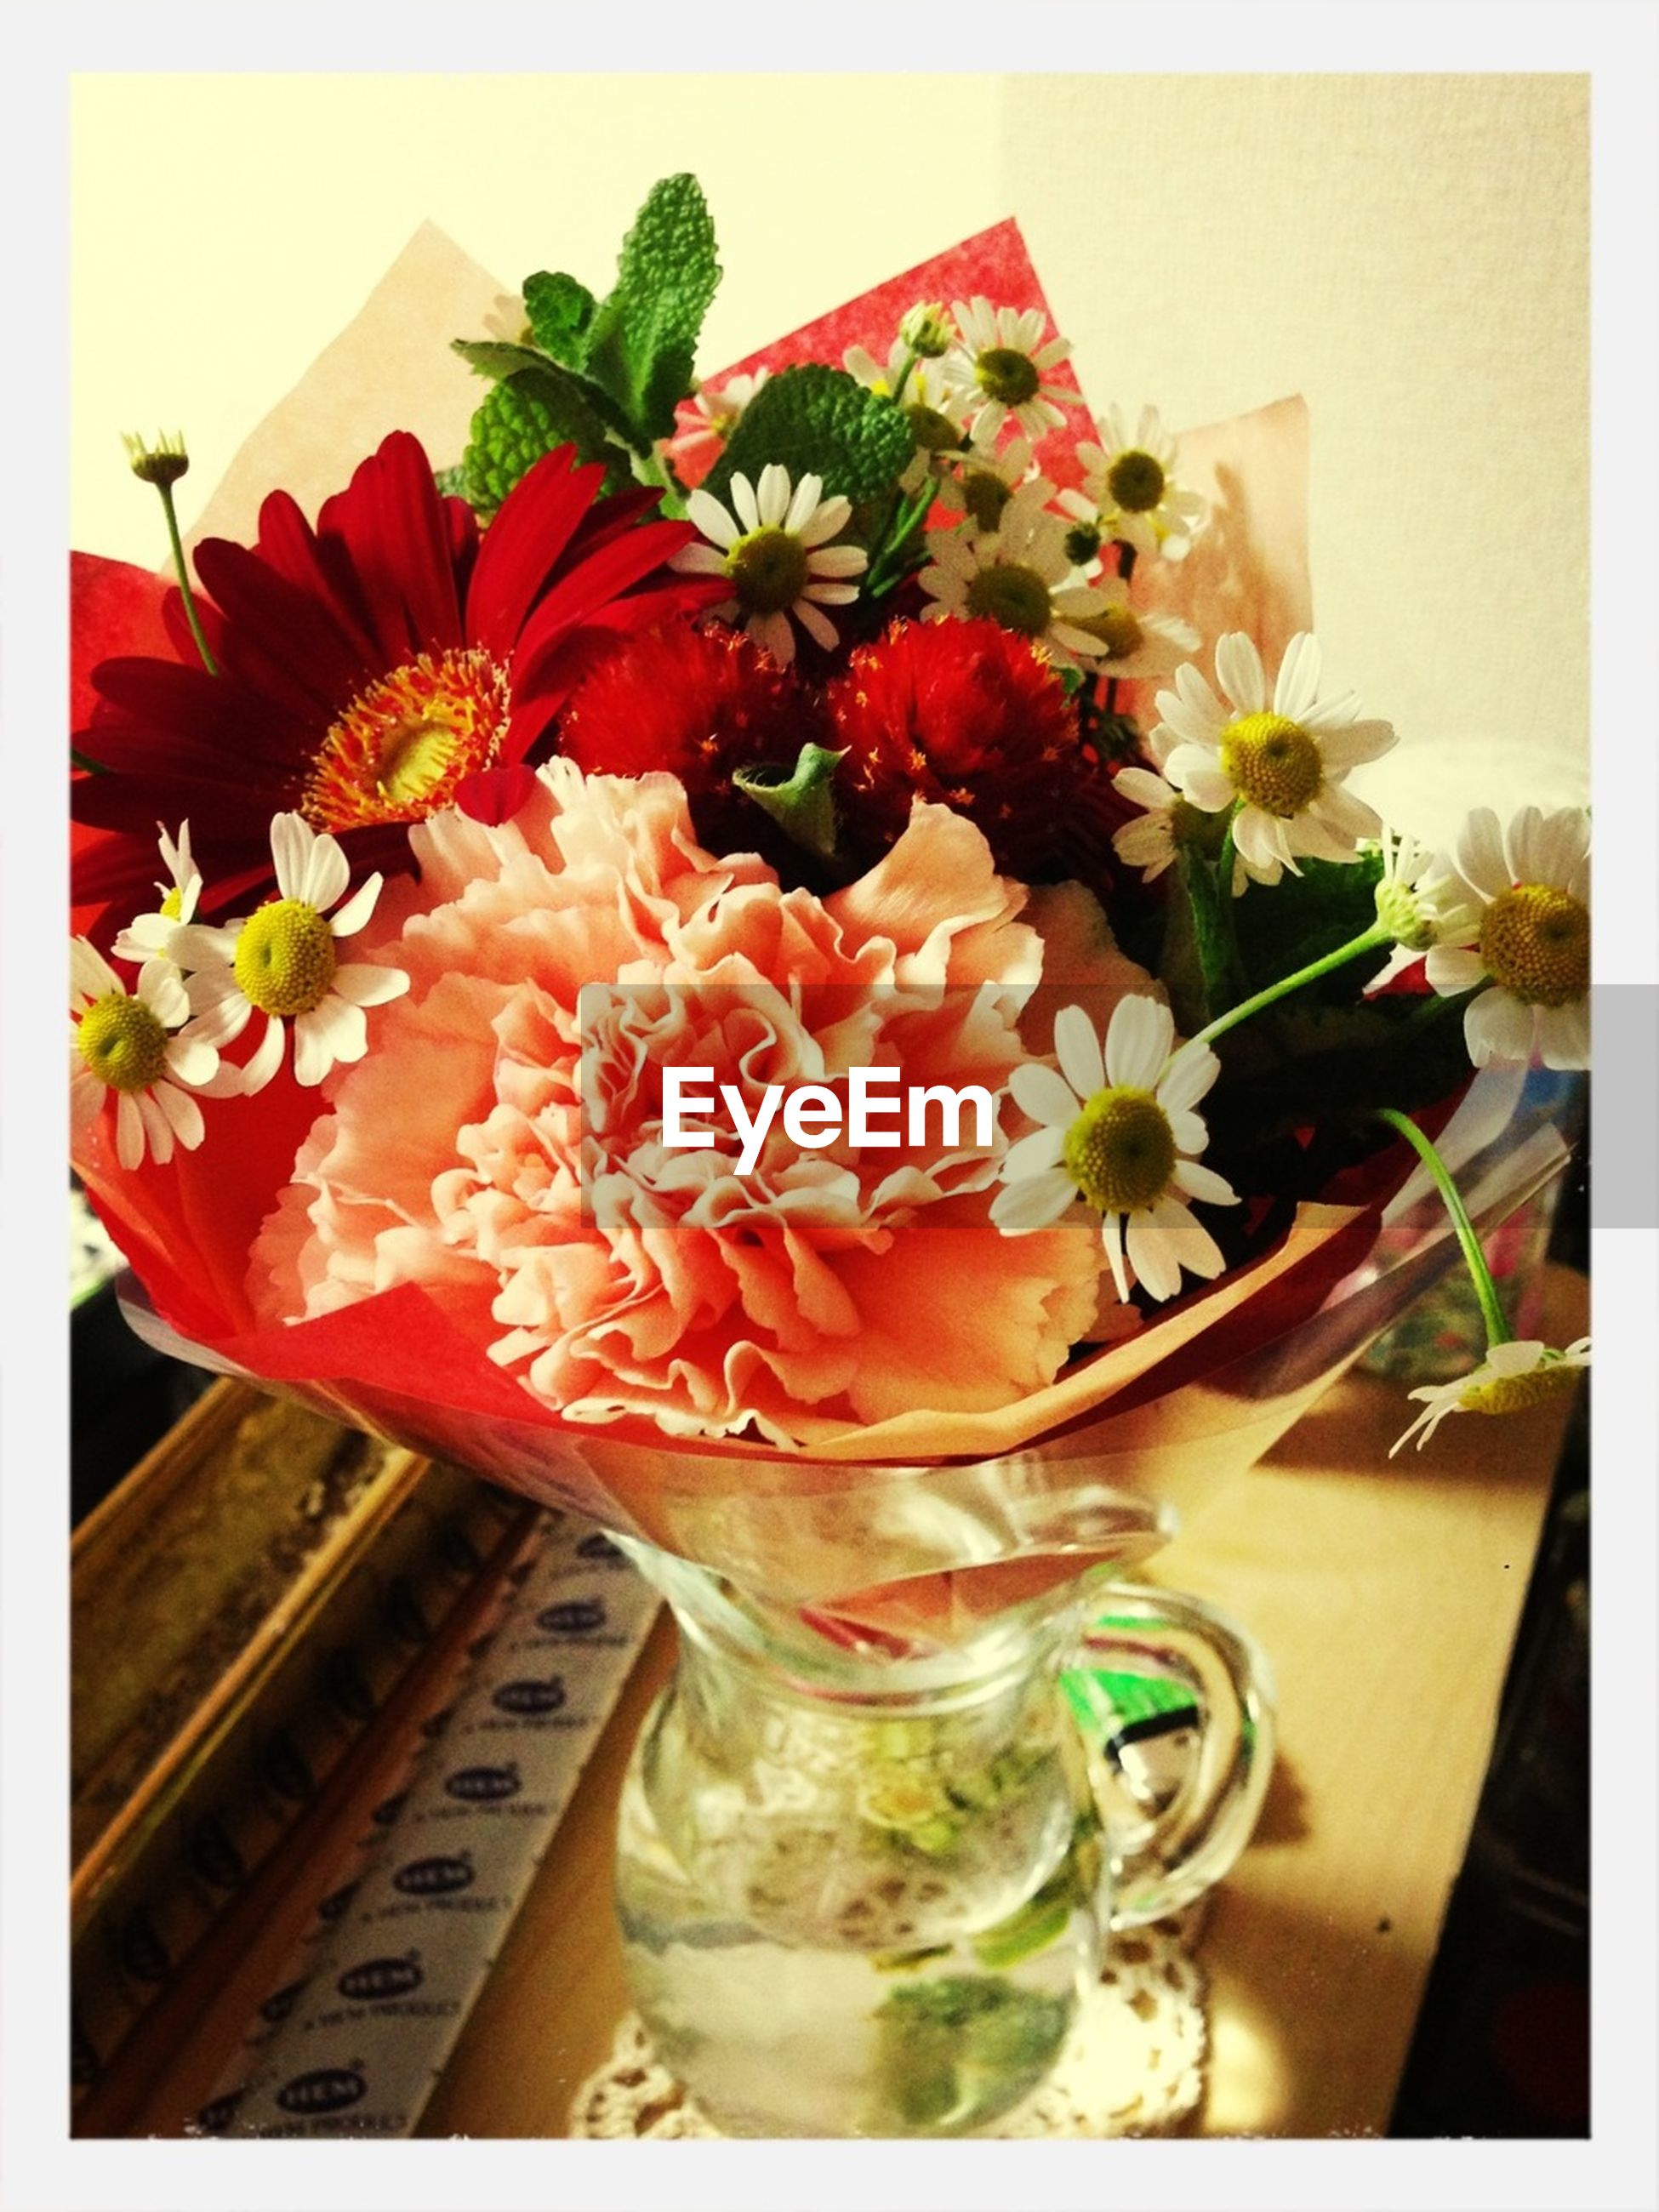 flower, indoors, freshness, vase, petal, table, fragility, flower arrangement, bunch of flowers, flower head, decoration, bouquet, close-up, home interior, auto post production filter, beauty in nature, red, potted plant, still life, high angle view